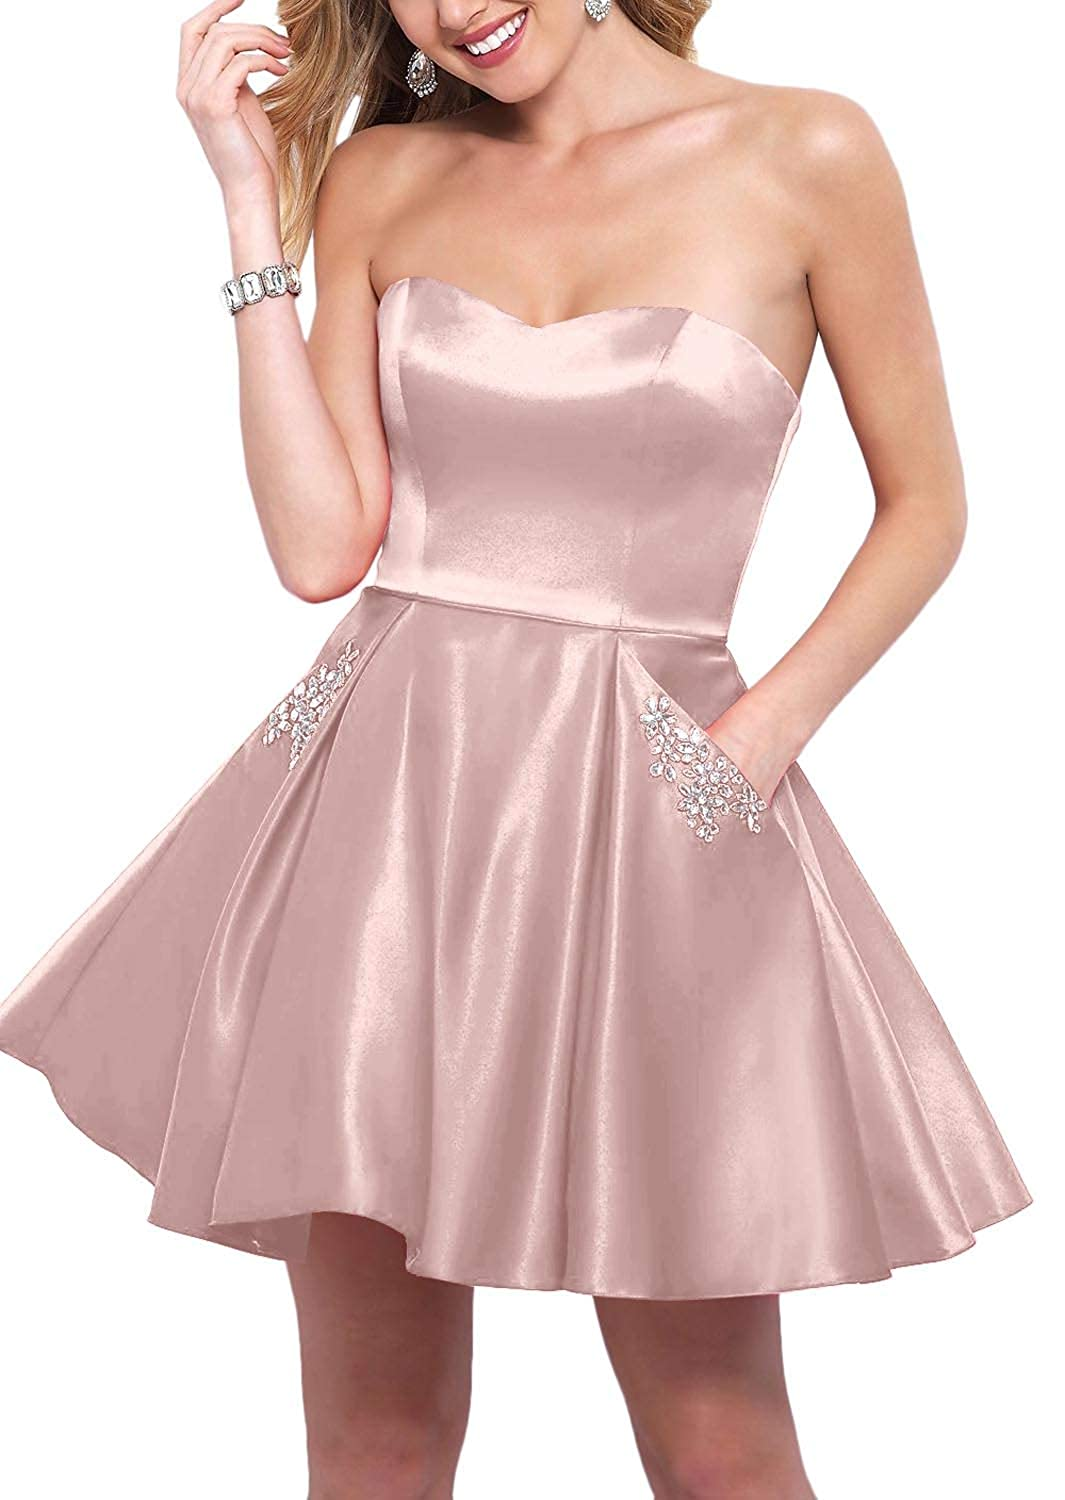 Pastel Pink YnanLi Dress Short Ball Gown Homecoming Dresses 2019 Strapless Sweetheart with Beaded Pockets